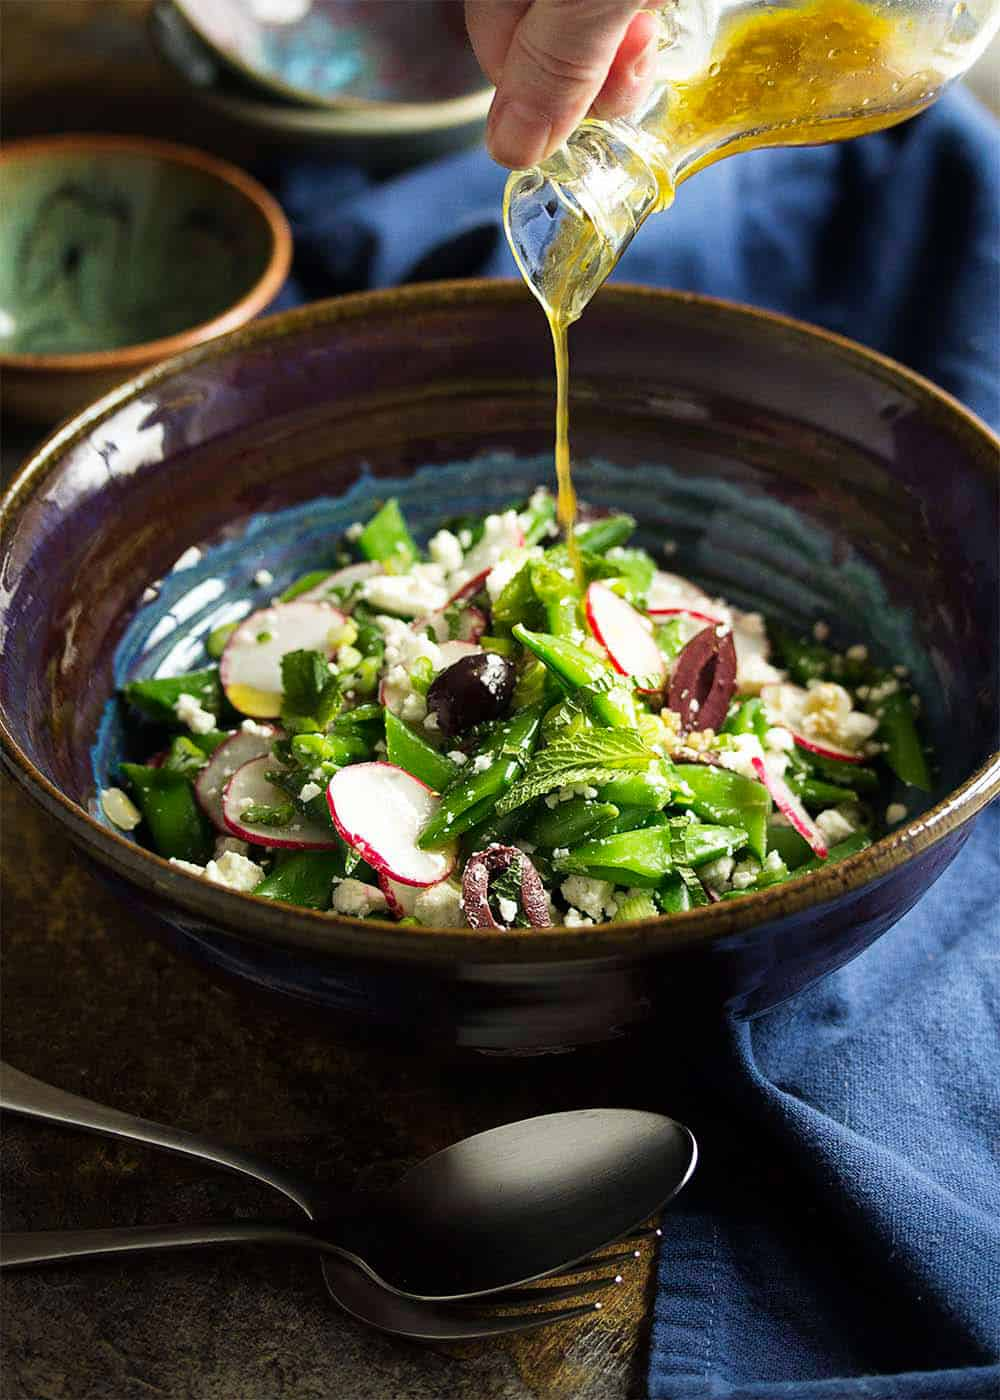 Spring radish snap pea greek salad + 15 Farmers market recipes to make in May! Delicious, vegetarian, (mostly) healthy spring/summer recipes made with fresh, seasonal produce from your local farmers market or CSA bin. Eat local! // Rhubarbarians